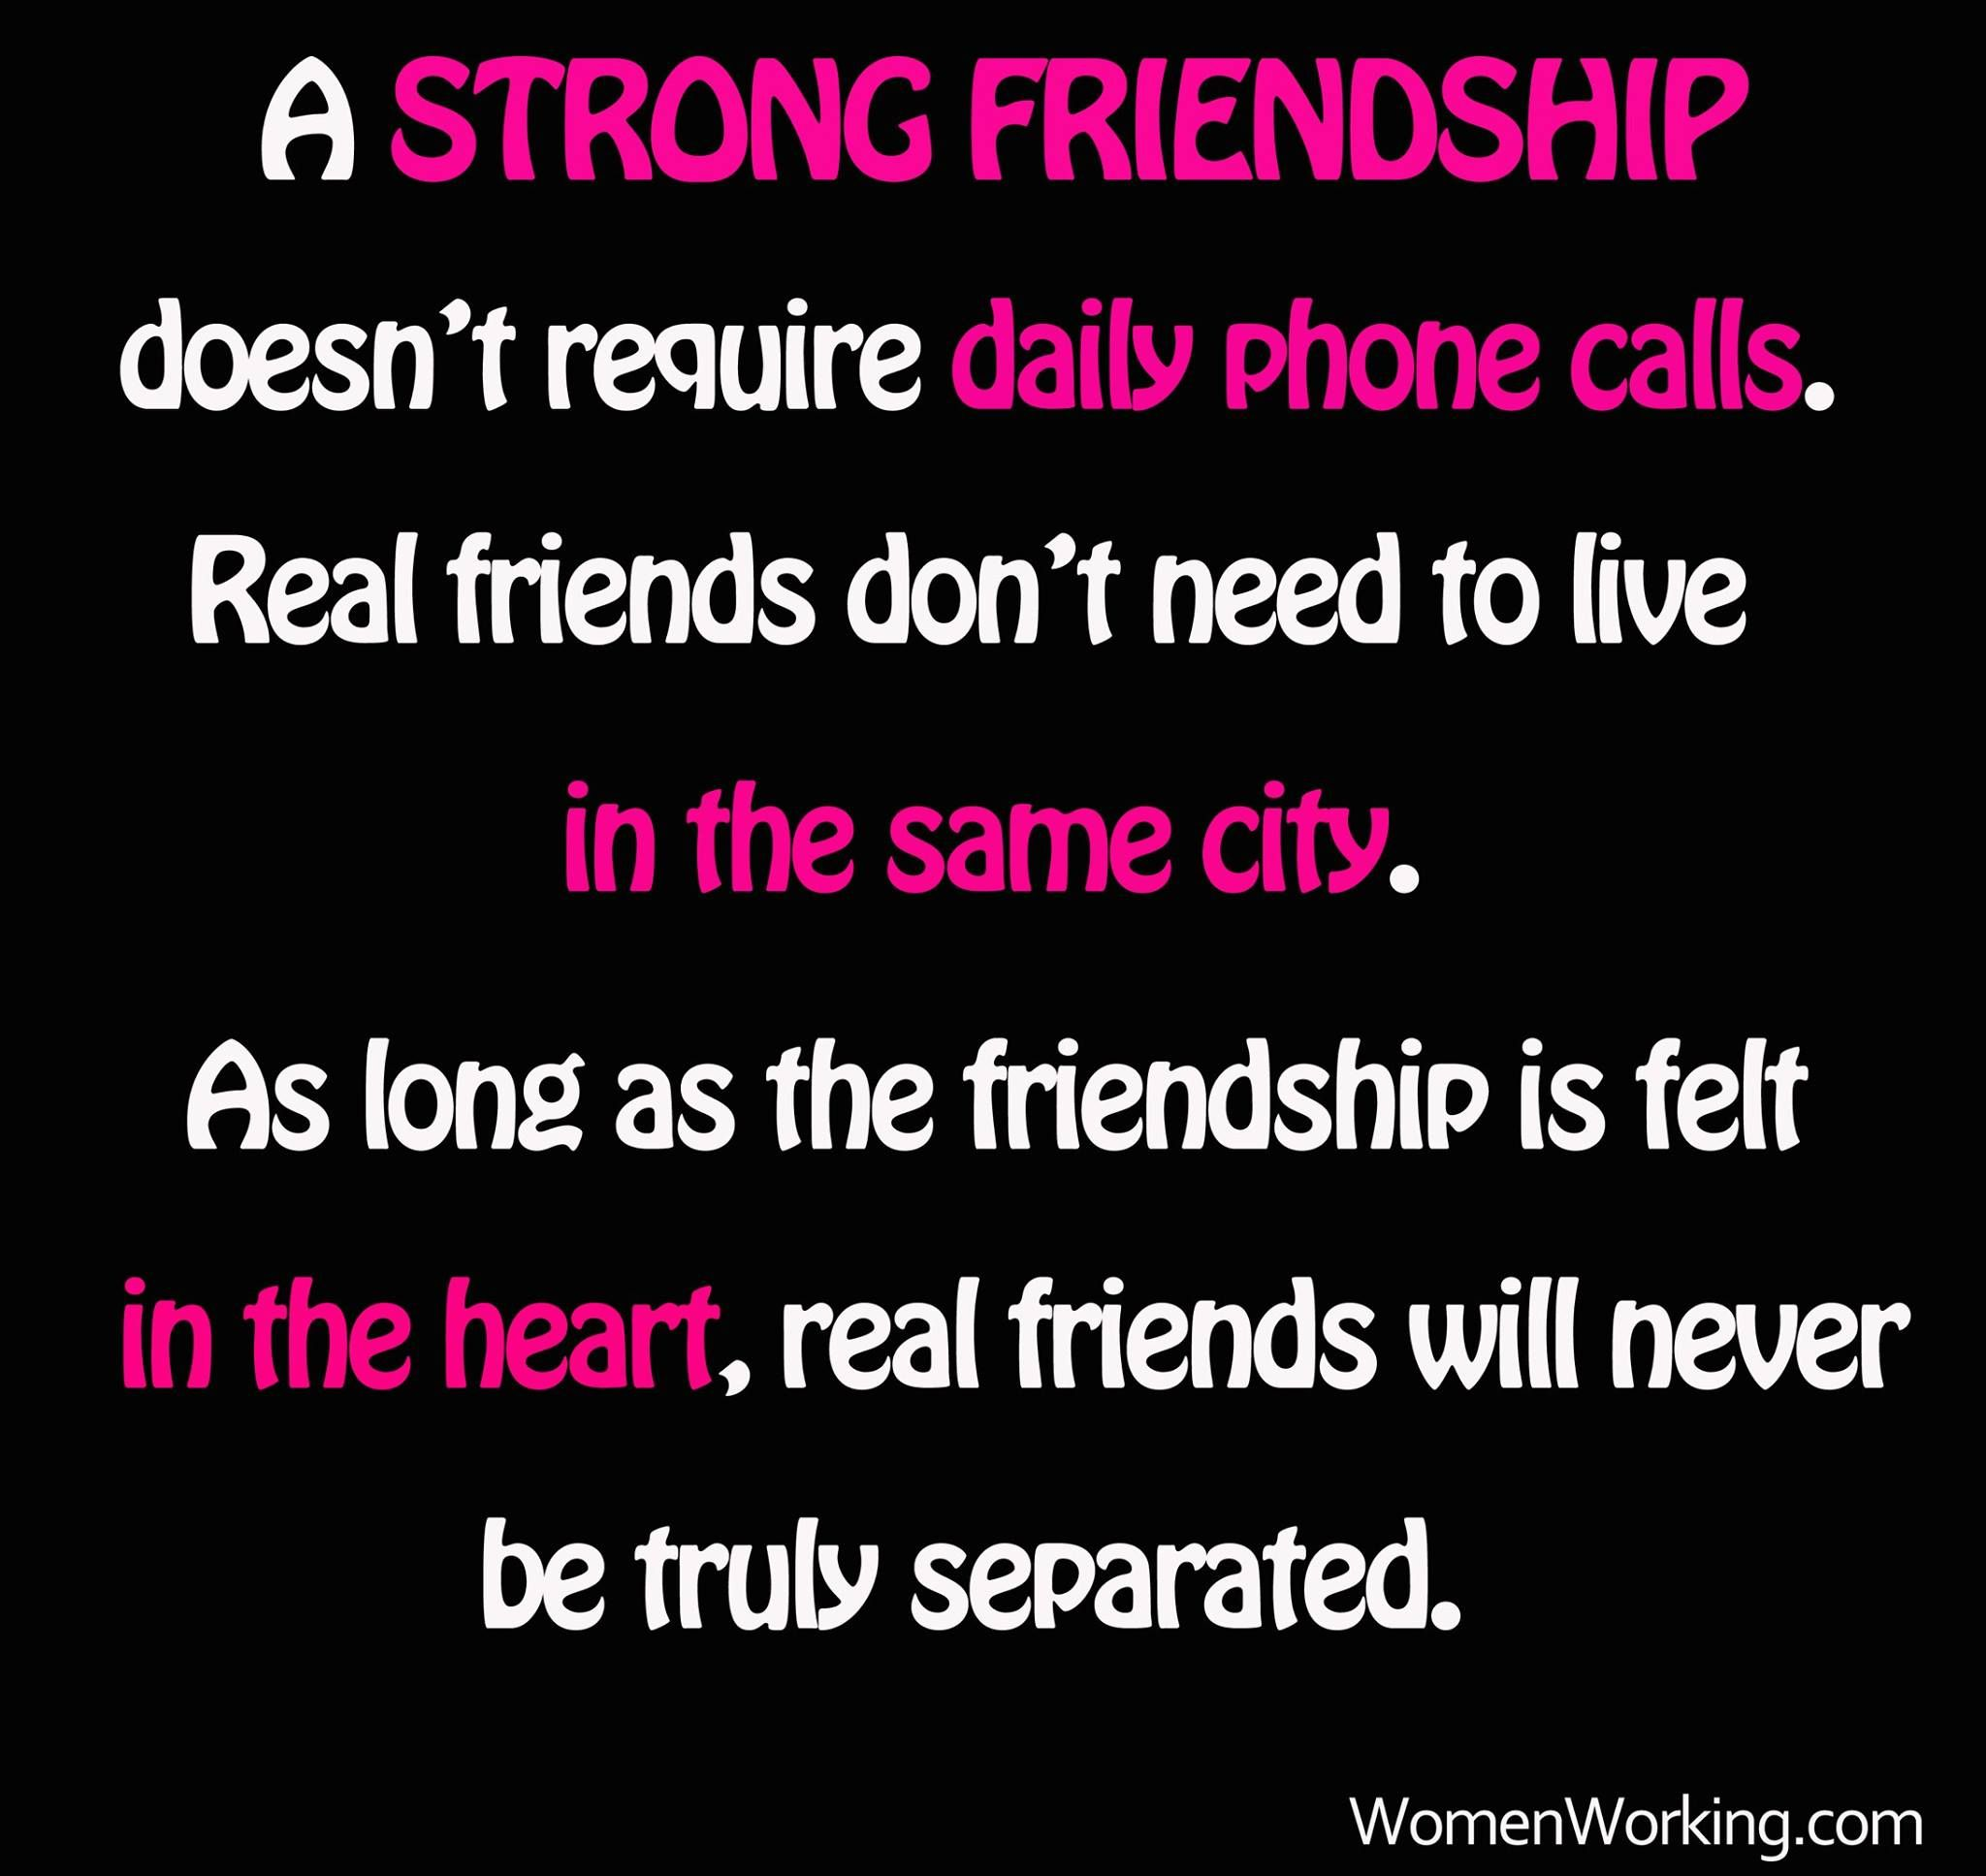 Quotes About Strong Friendships A Strong Friendship Doesn't Require Daily Phone Callsreal